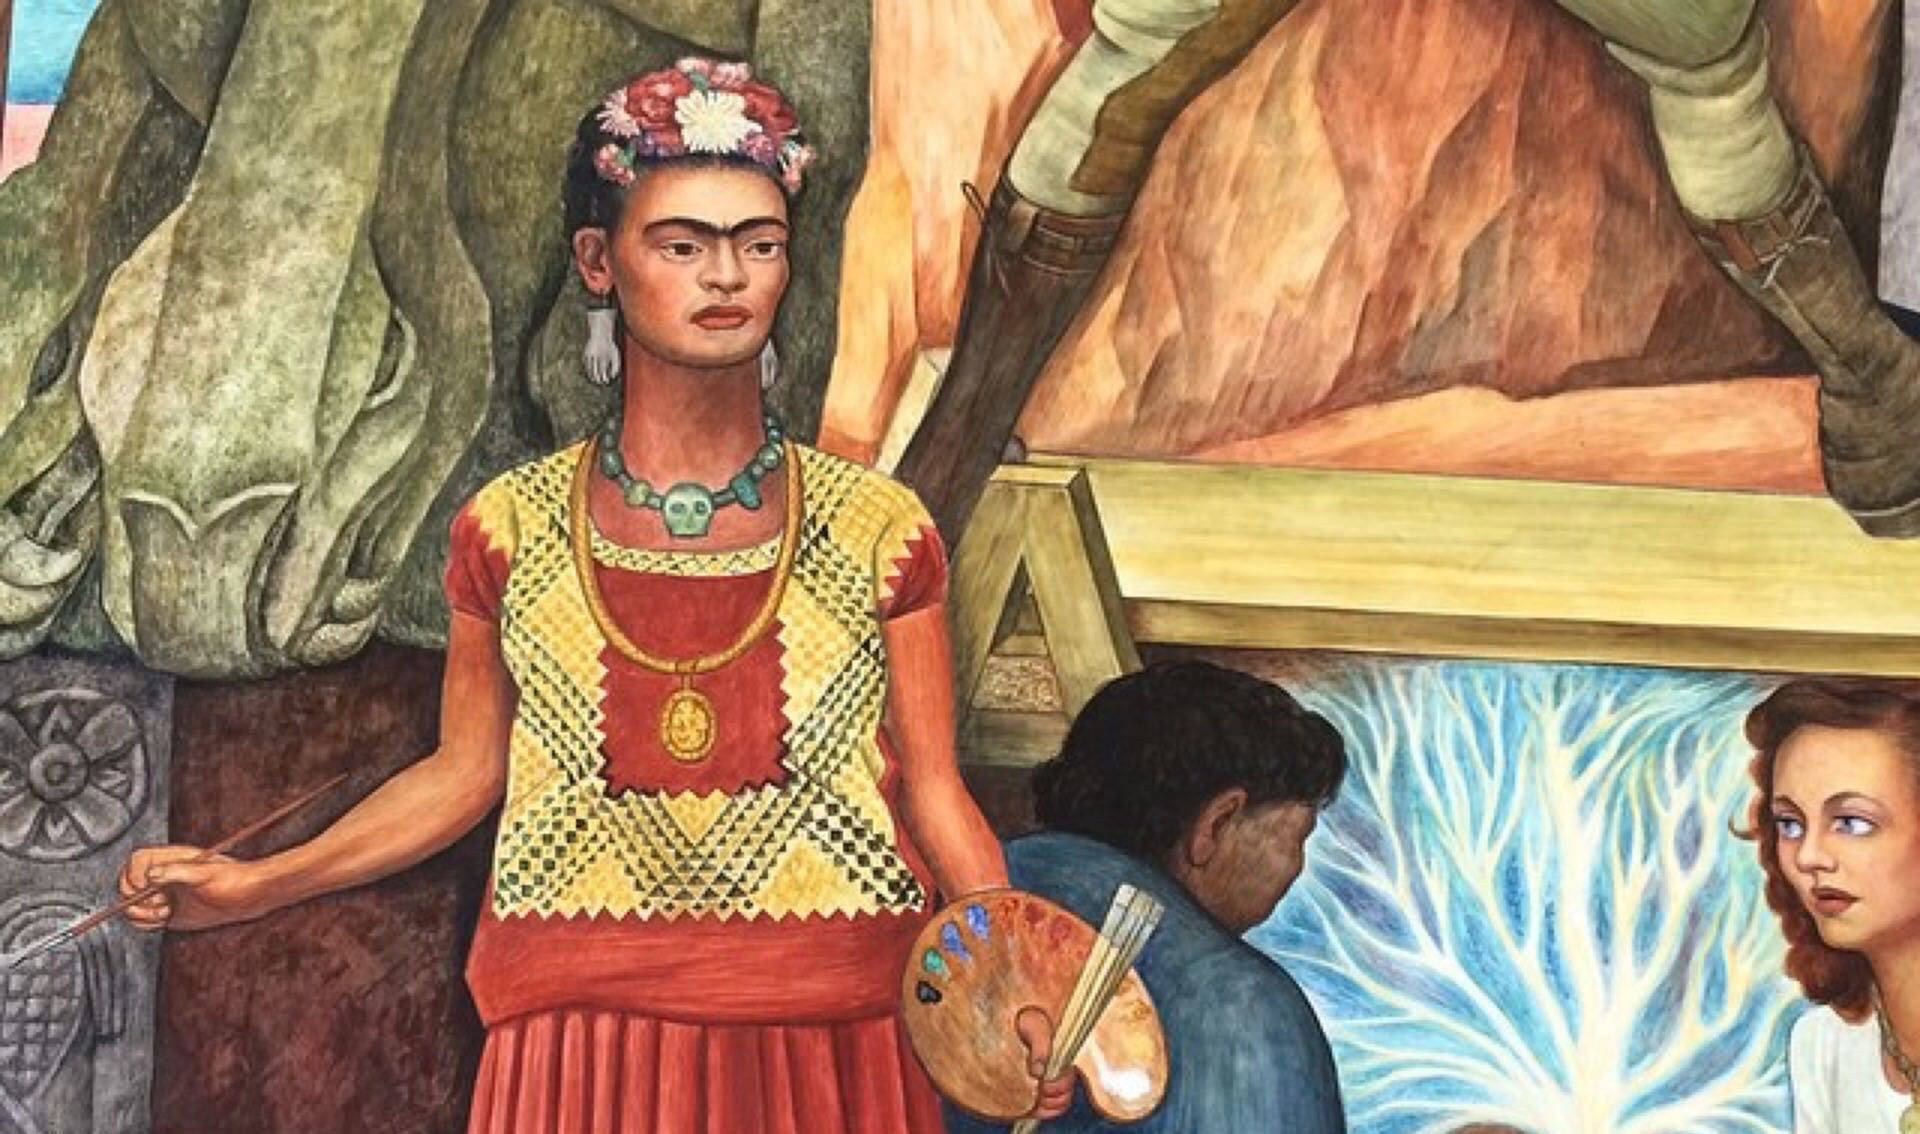 A detail of Diego Rivera's 'Pan American Unity' mural featuring Frida Kahlo on view at City College of San Francisco.  Shannon Badiee / Instagram